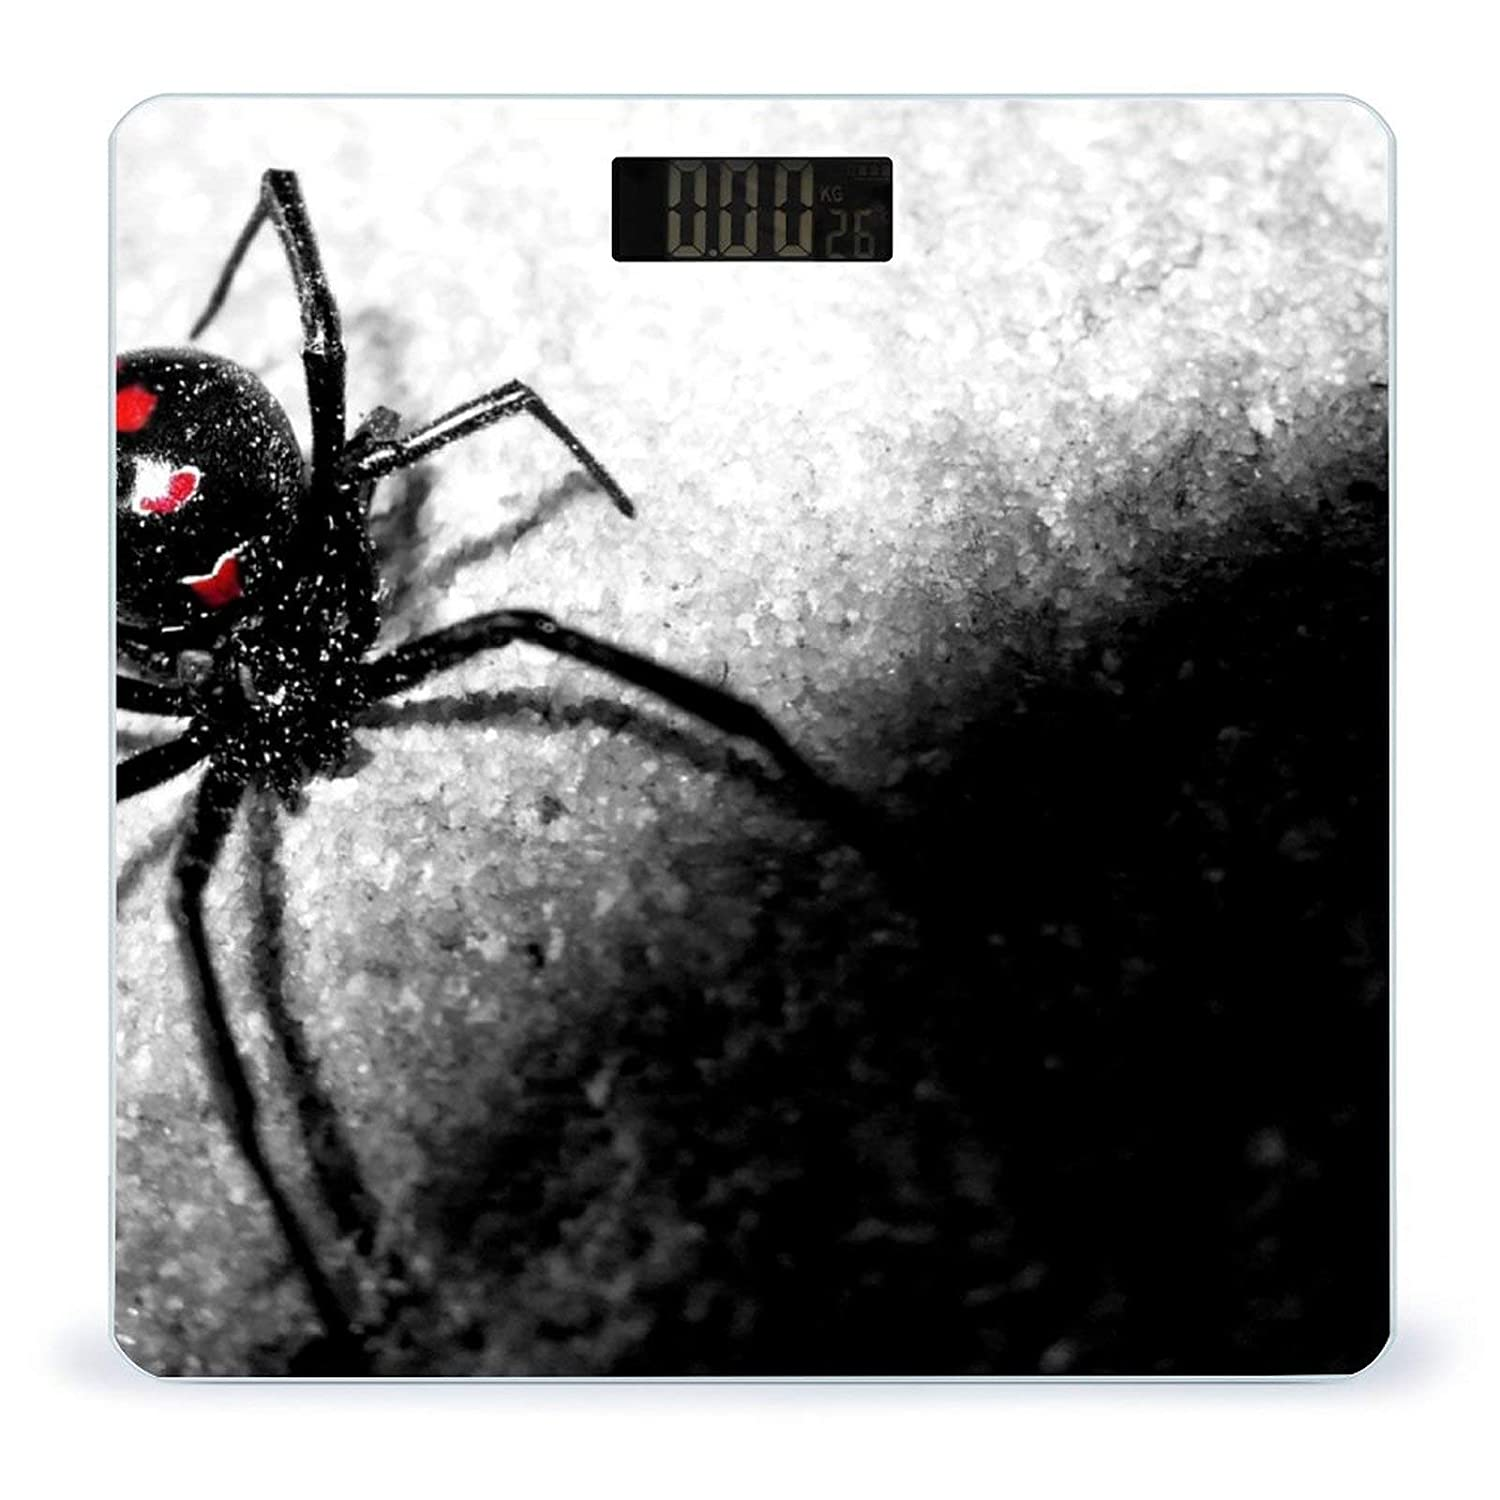 SpiderWeight Scale Selling Digital Body Battery-Powered It is very popular Bathroom